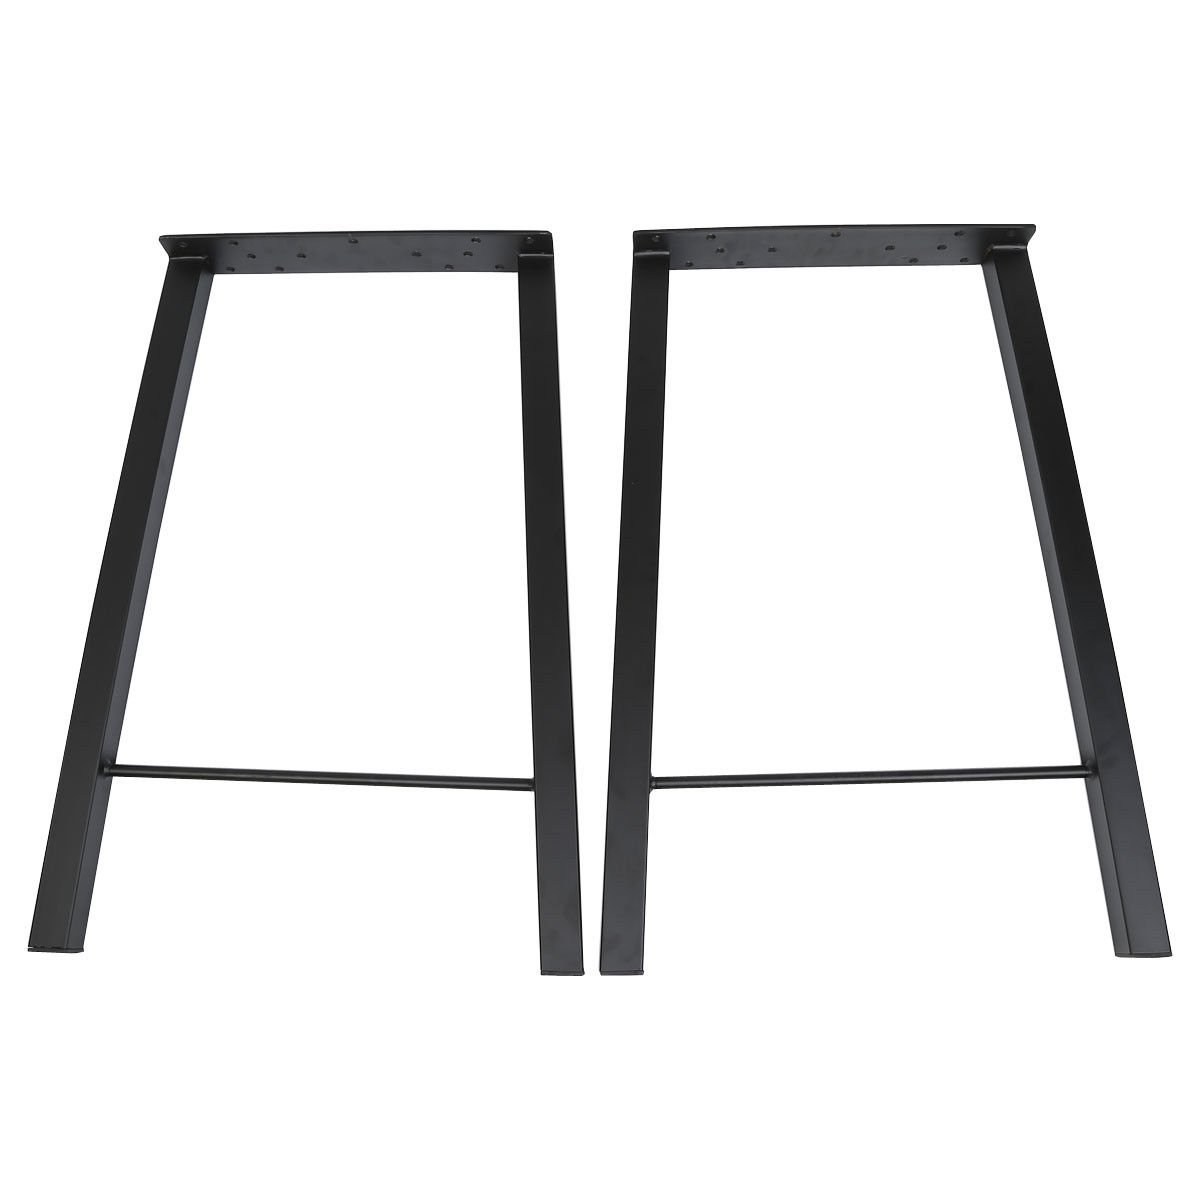 Tengchang 28'' Industry Dinner Table Leg Metal Steel Bench Legs DIY Furniture by Tengchang (Image #2)